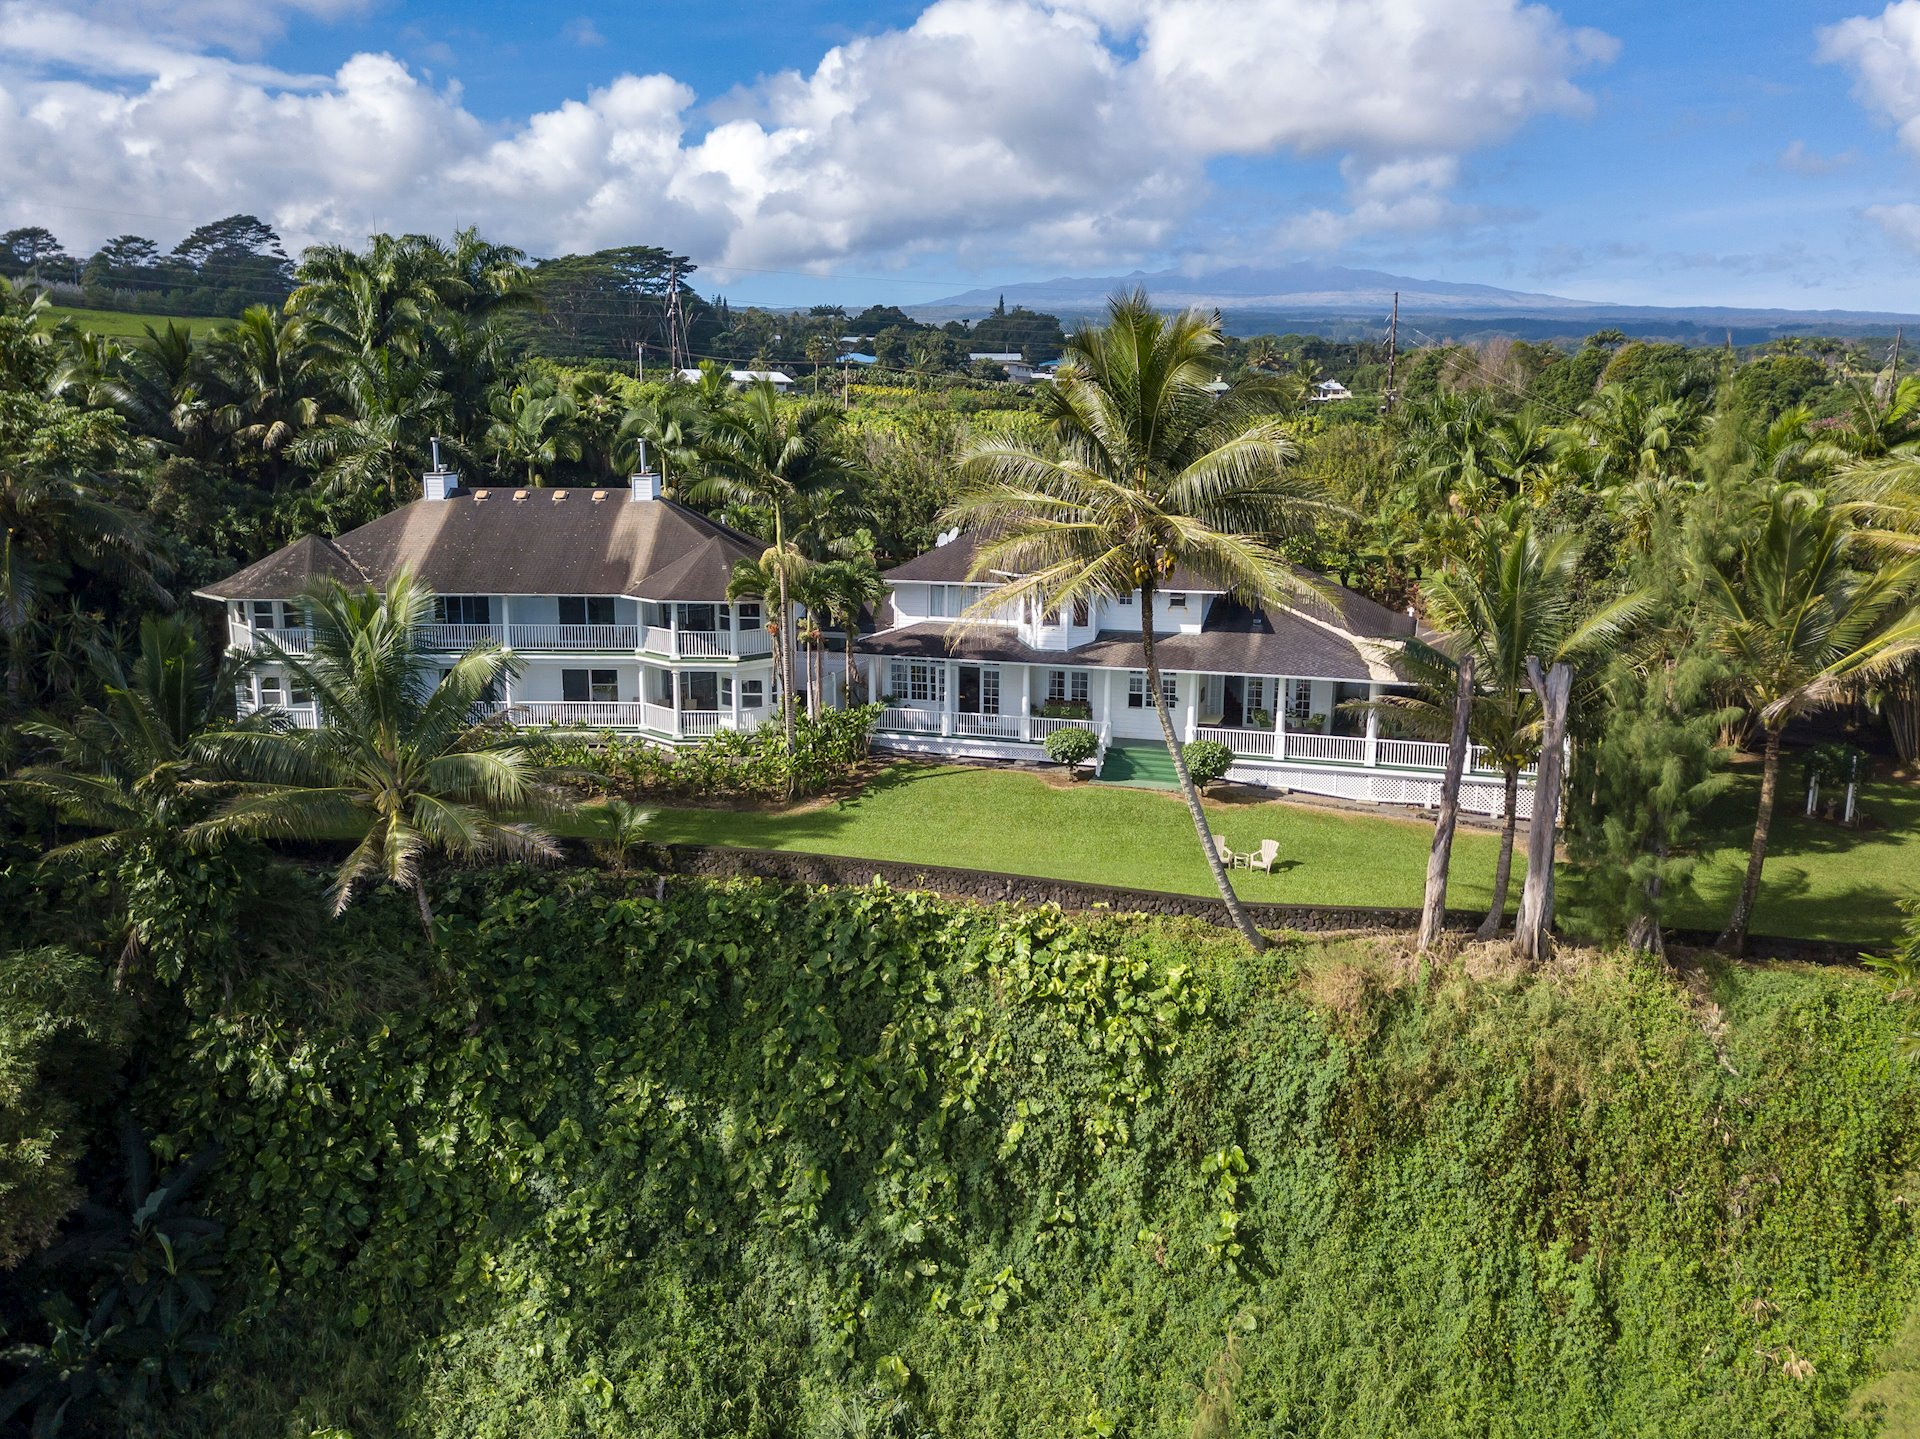 "A most rare 3.40-acre oceanfront residential estate sitting atop a 100-foot cliff is now offered for sale in the Honomu area of the Hamakua Coast on the Big Island of Hawaii. Even more rare is the over 7,200 sqft. of living space, 13 bedrooms and 10.5 bathrooms, huge oceanfront old-fashioned verandas for family, private or public gatherings and with other oceanfront lanais attached to many of the bedroom suites. Ten of the 12 bedrooms face the ocean.  One of the bedrooms is currently being used as an office however it feels more like a library with wood shelving throughout; very special. Visions of the Great Gatsby era with lawn tennis, bird-watching, children playing, parties and croquet suit the style and feel of the home.  Approximately 13 miles to Hilo; 30 to historic Waimea and two miles to Kolekole State Park and world renown Akaka Falls.  Two oceanfront dining areas; one more formal for large gatherings or another as a smaller breakfast room off the huge kitchen.   Conventional electricity, private well water with a reliable history, easy access off main highway. Architecturally speaking the property has resonating Plantation, Victorian and Old Hawaii era qualities.  A distinctly cultivated palm lined driveway, secluded tropical landscaped grounds, seasonal whale and spinner dolphin watching nearly year-long, this property is ready for the market. Seller has worked 2+ years towards preparing their home for sale: new look including flooring, paint, minimalized furniture, expanded maintenance to all parts of the property and a new nursery in order to present and sale as a large yet traditional single-family residence.  Ocean views look to Pohakunanu Bay and locally known surfing sites called ""Ladders"" and ""23 Flats"".  2016 appraisal is above the current list price. Currently operating as the Palms Cliff House B&B, Sellers will consider a sale of the business w/an acceptable offer for the real estate or, at an additional cost with a purchase of the real estate."